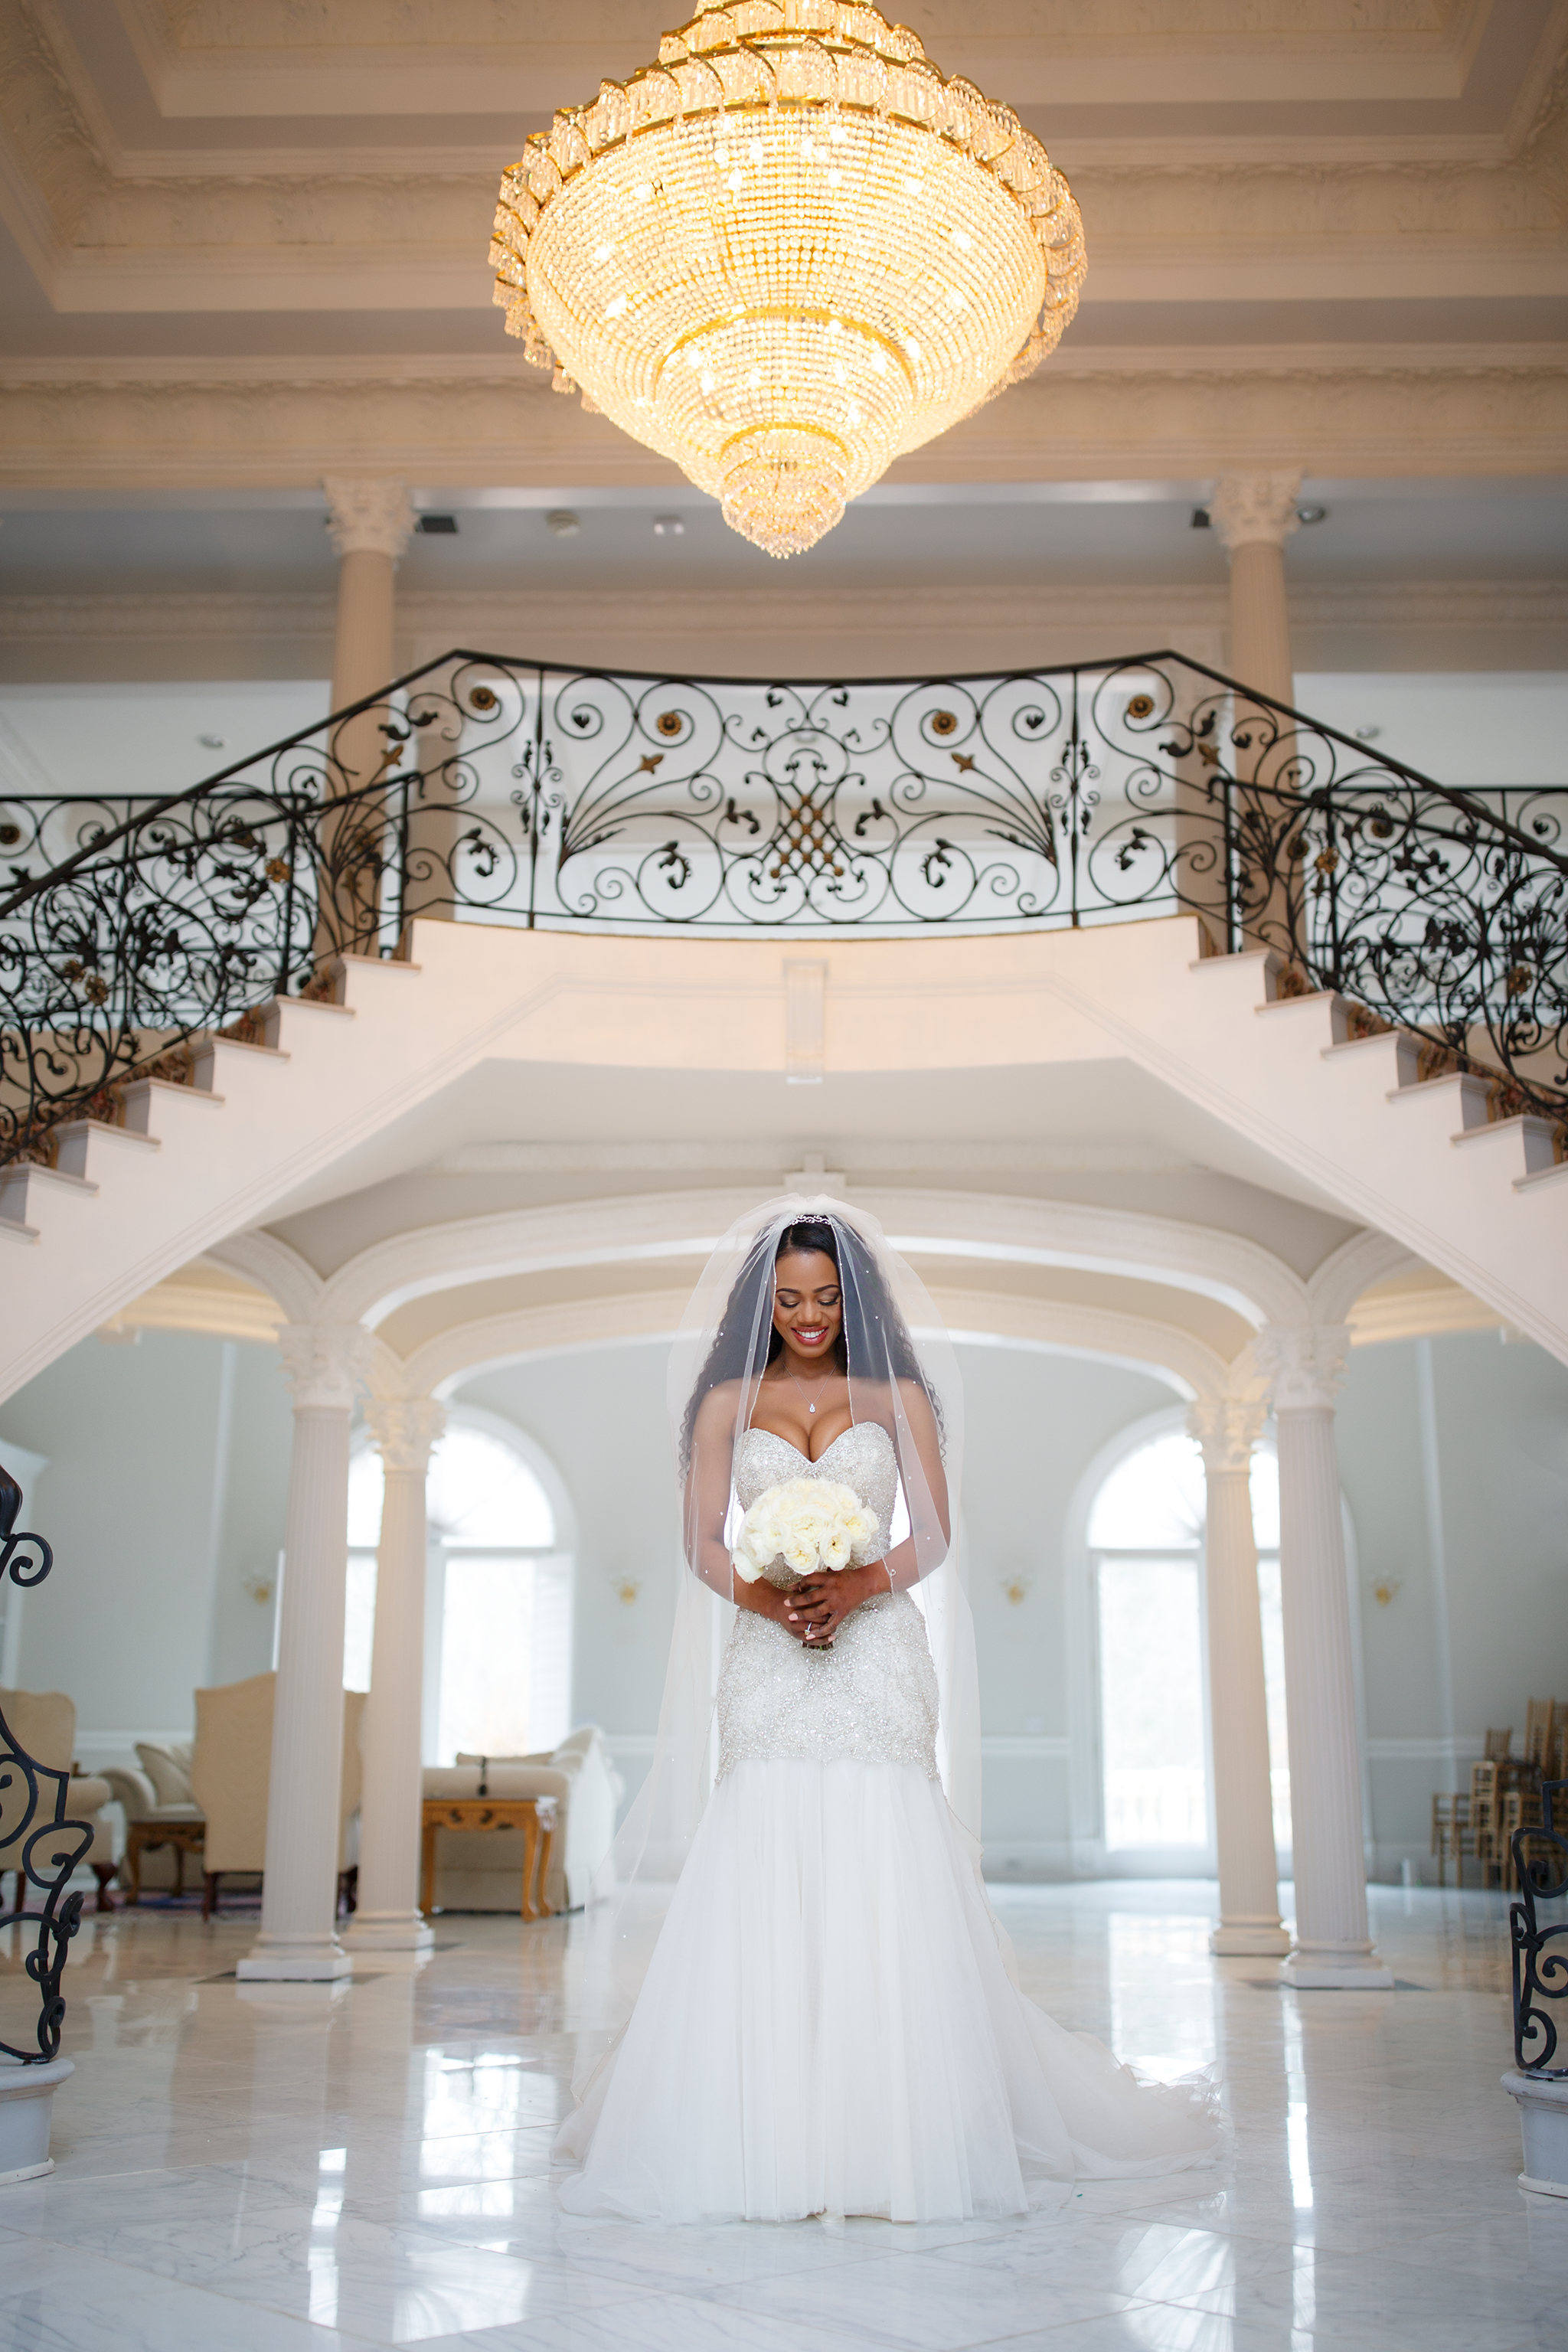 Atlanta_wedding_photographer_Biltmore Ballrooms_Leah Eversley_Photography.png